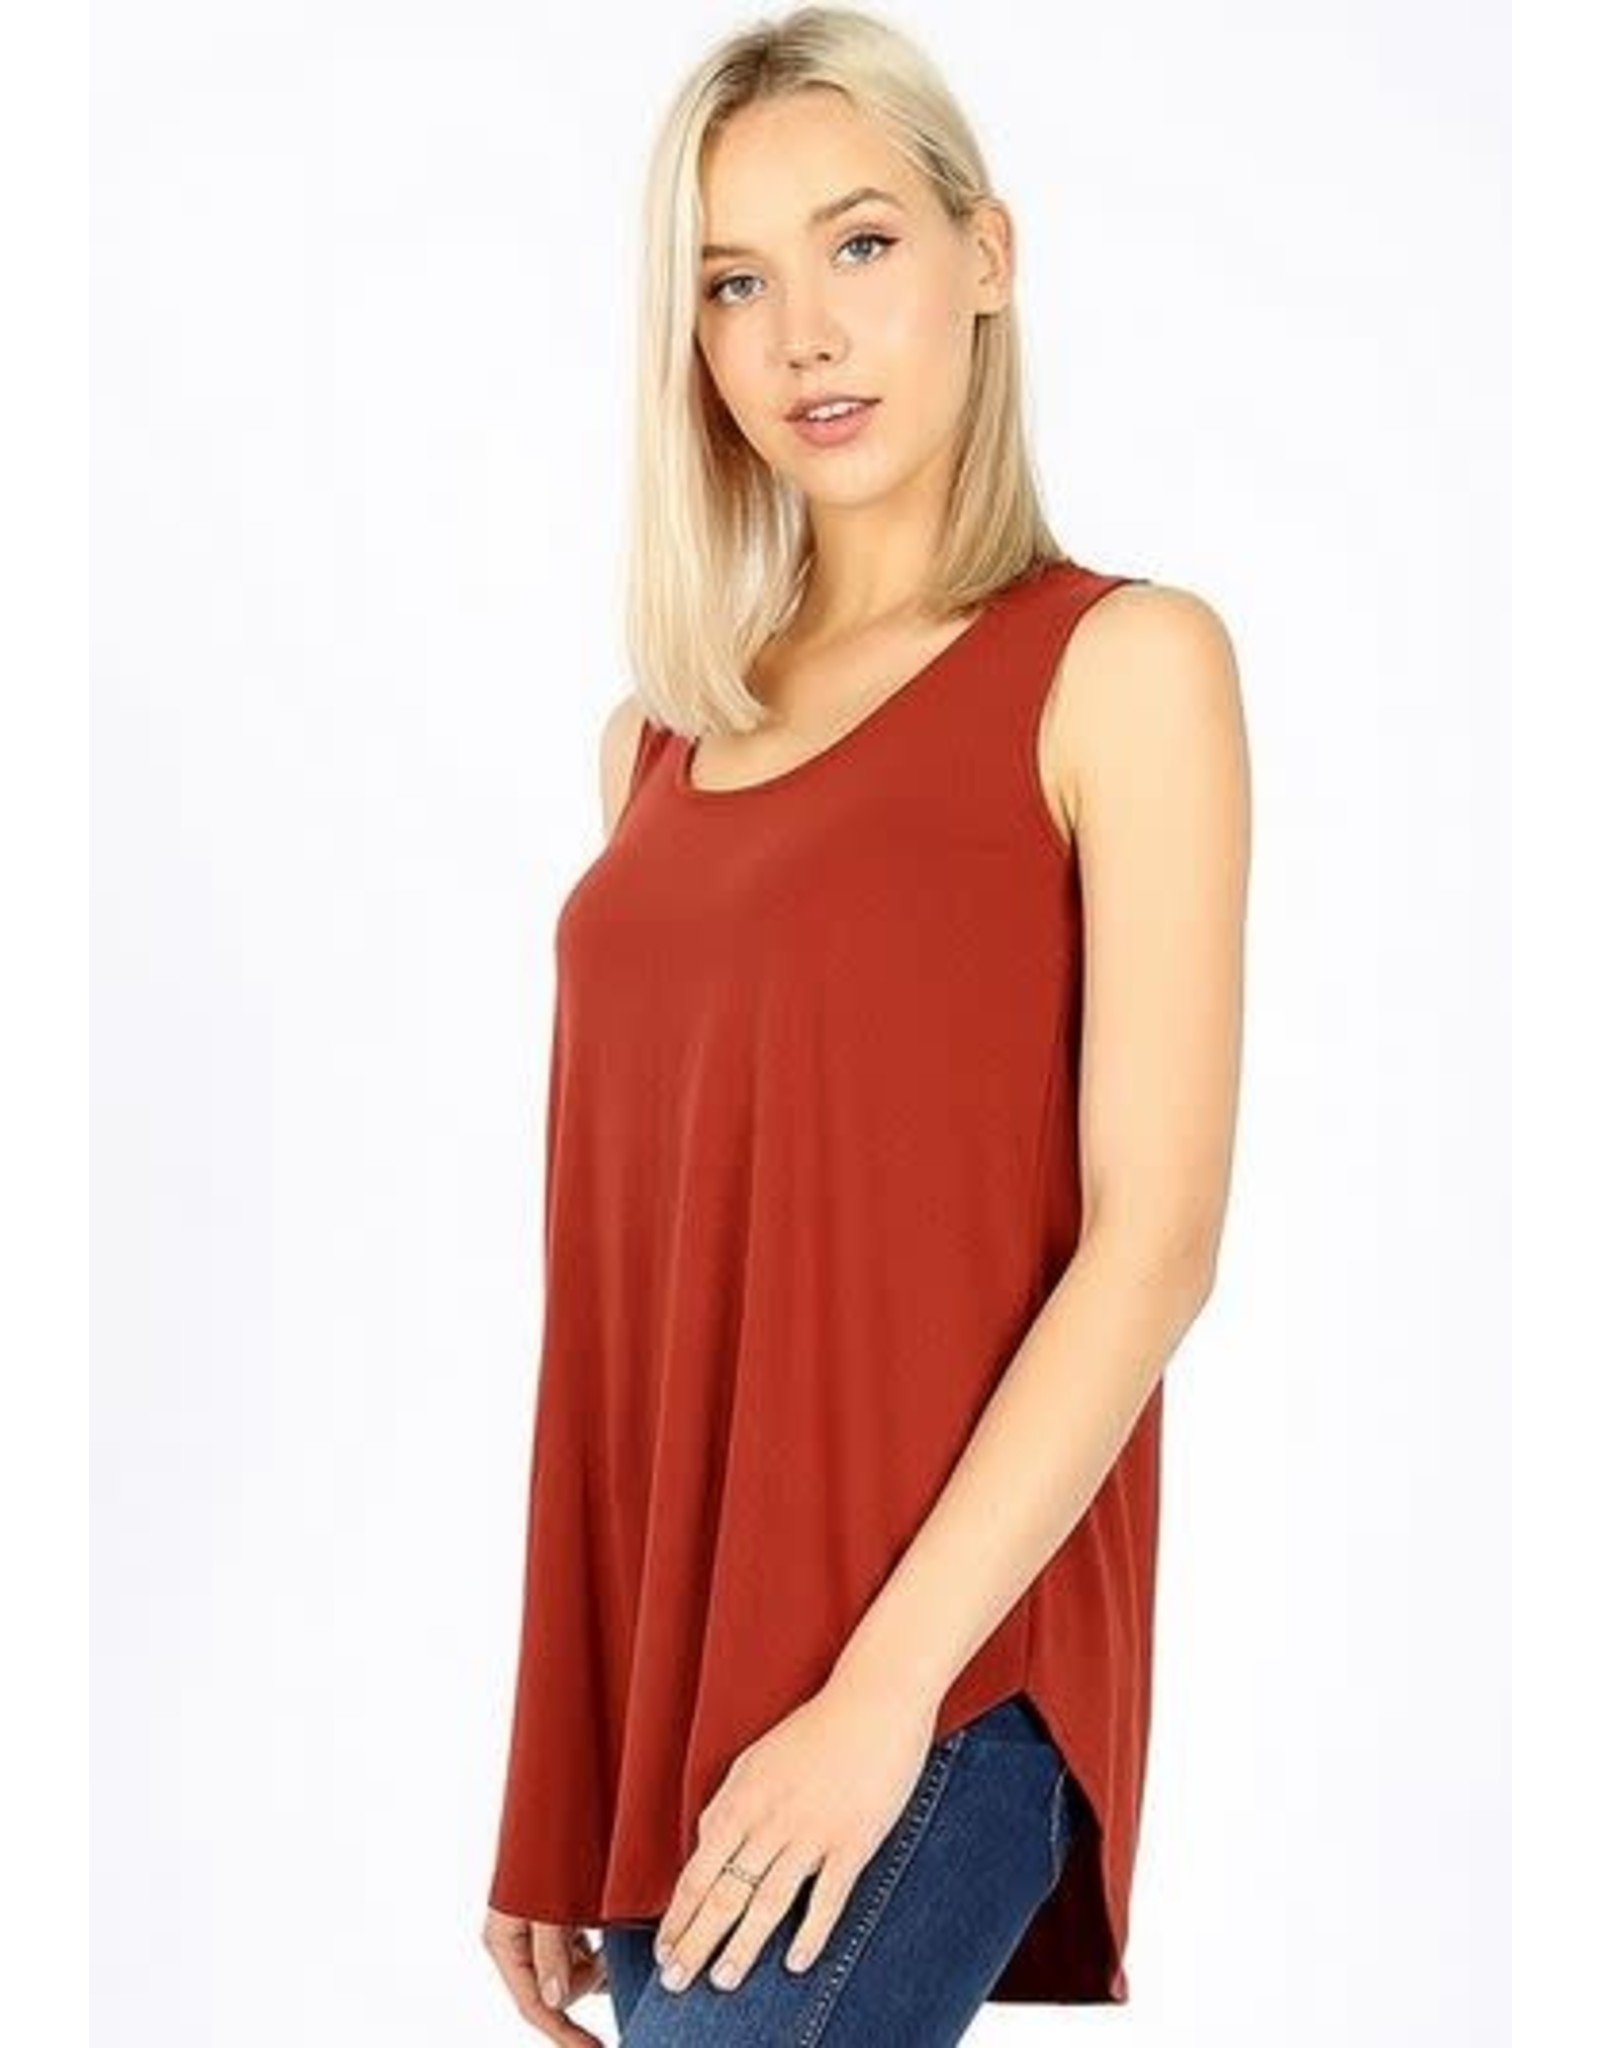 FIRED BRICK BASIC SOLID COLOR SLEEVELESS TANK